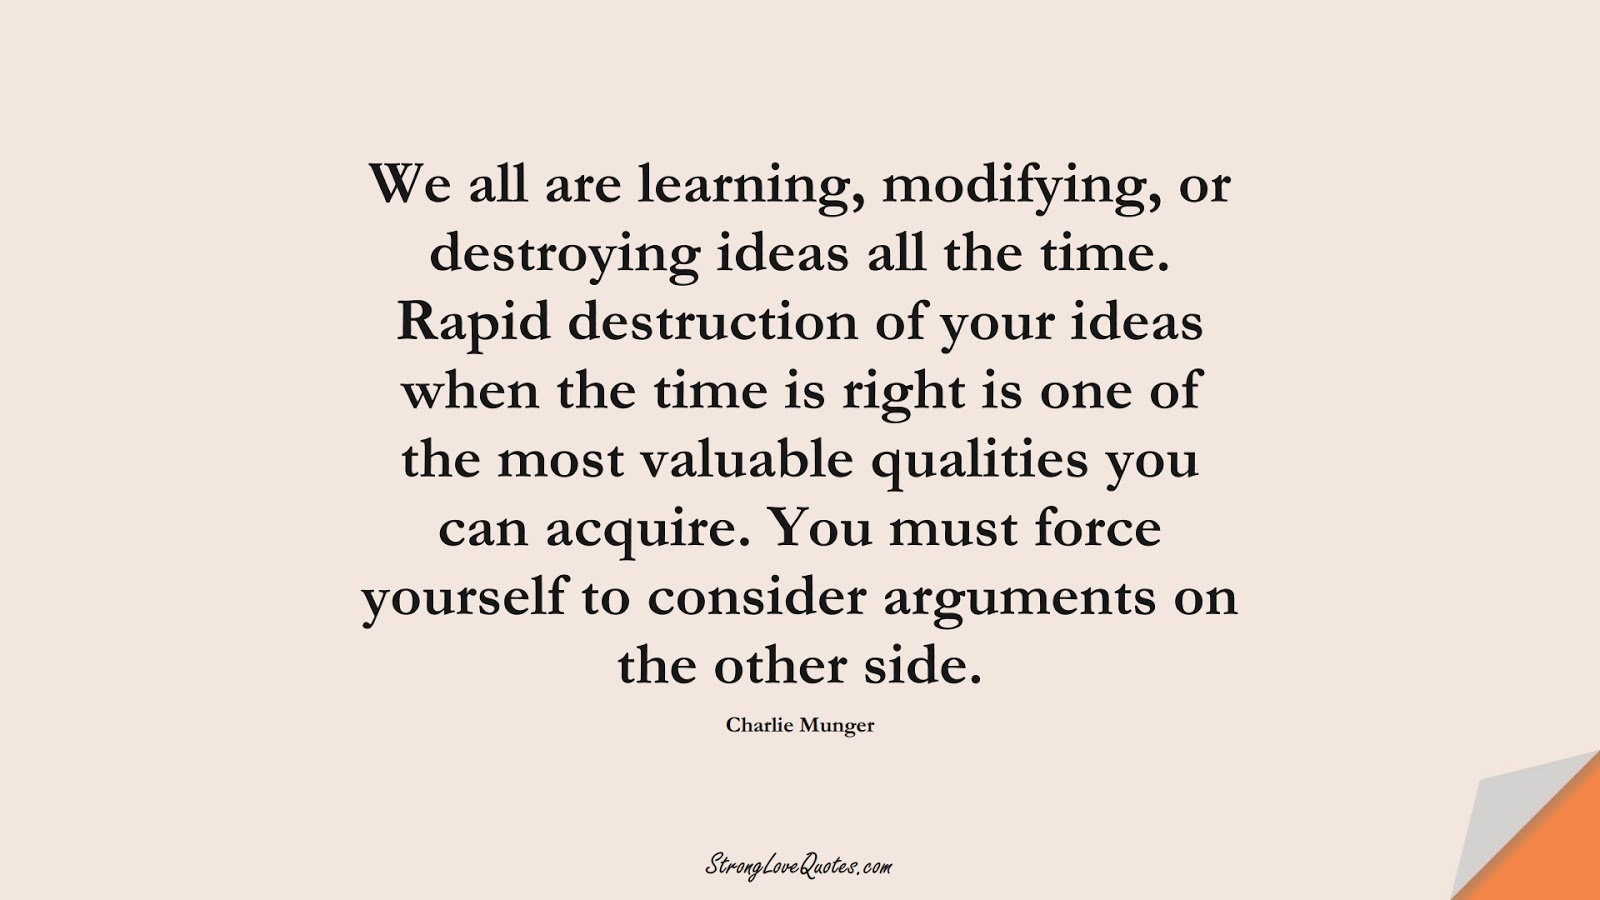 We all are learning, modifying, or destroying ideas all the time. Rapid destruction of your ideas when the time is right is one of the most valuable qualities you can acquire. You must force yourself to consider arguments on the other side. (Charlie Munger);  #LearningQuotes